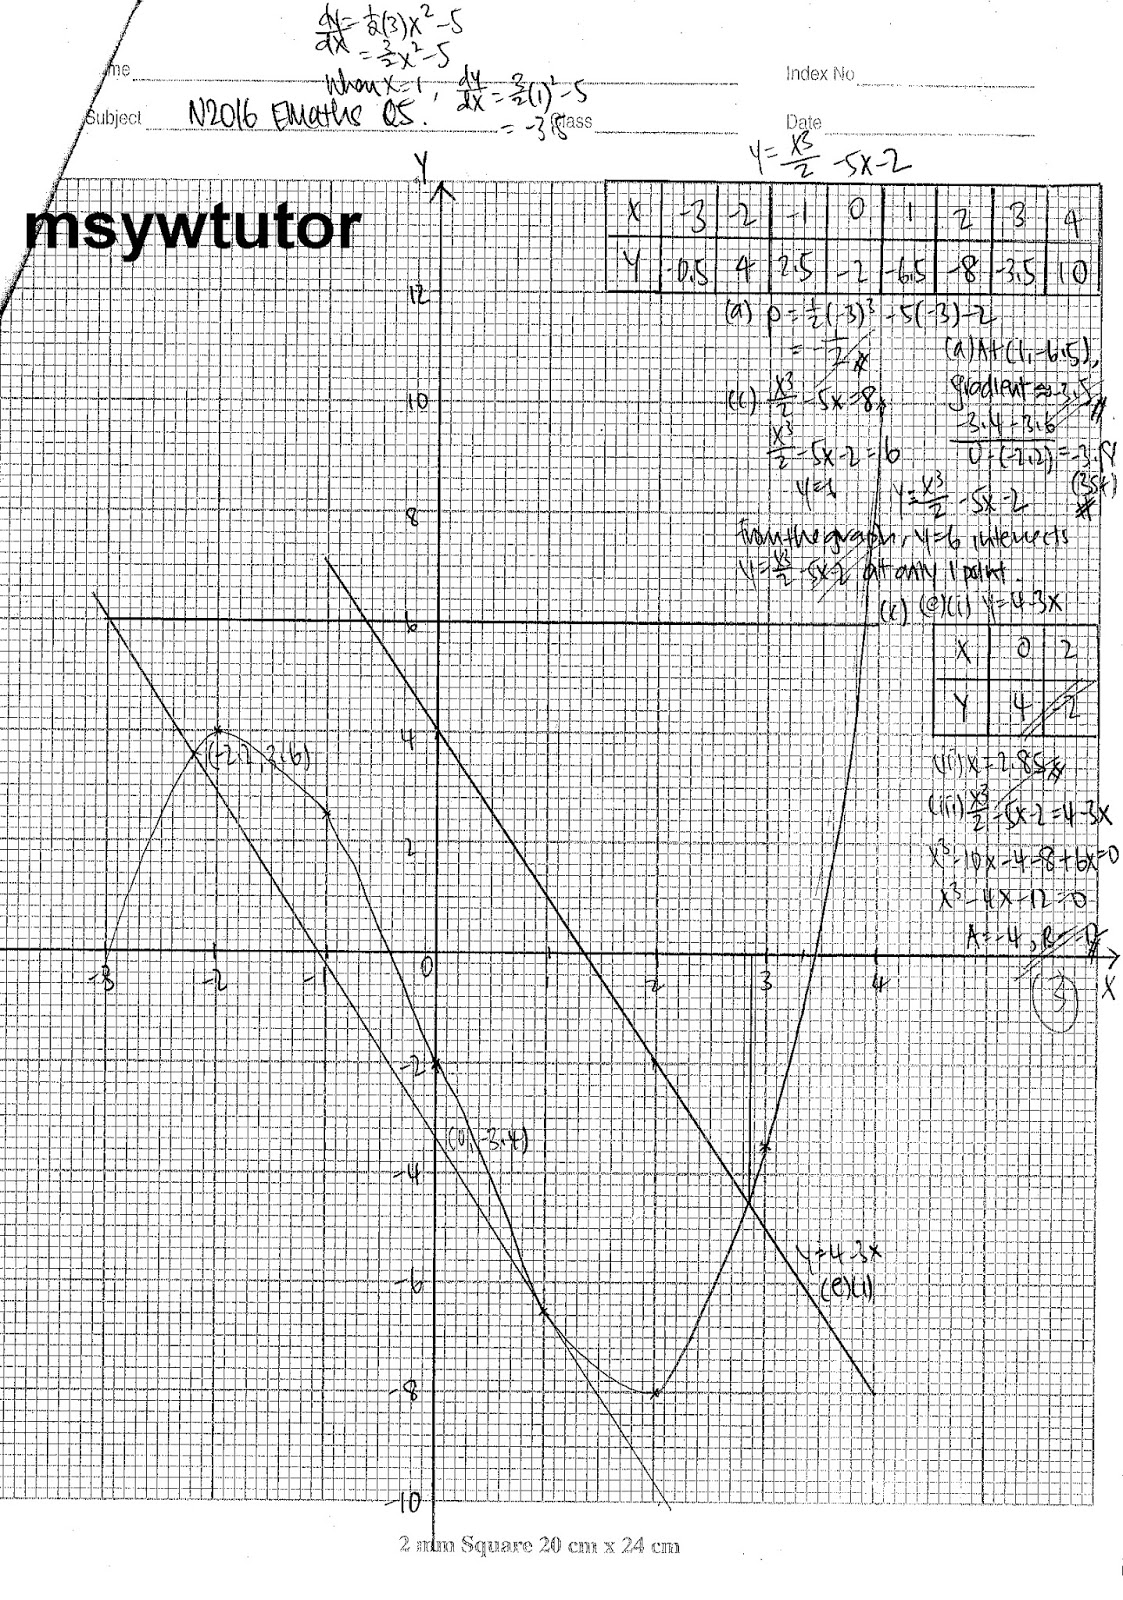 Msyw Elementary Mathematics Emath Paper 1 And 2 Suggested Solutions